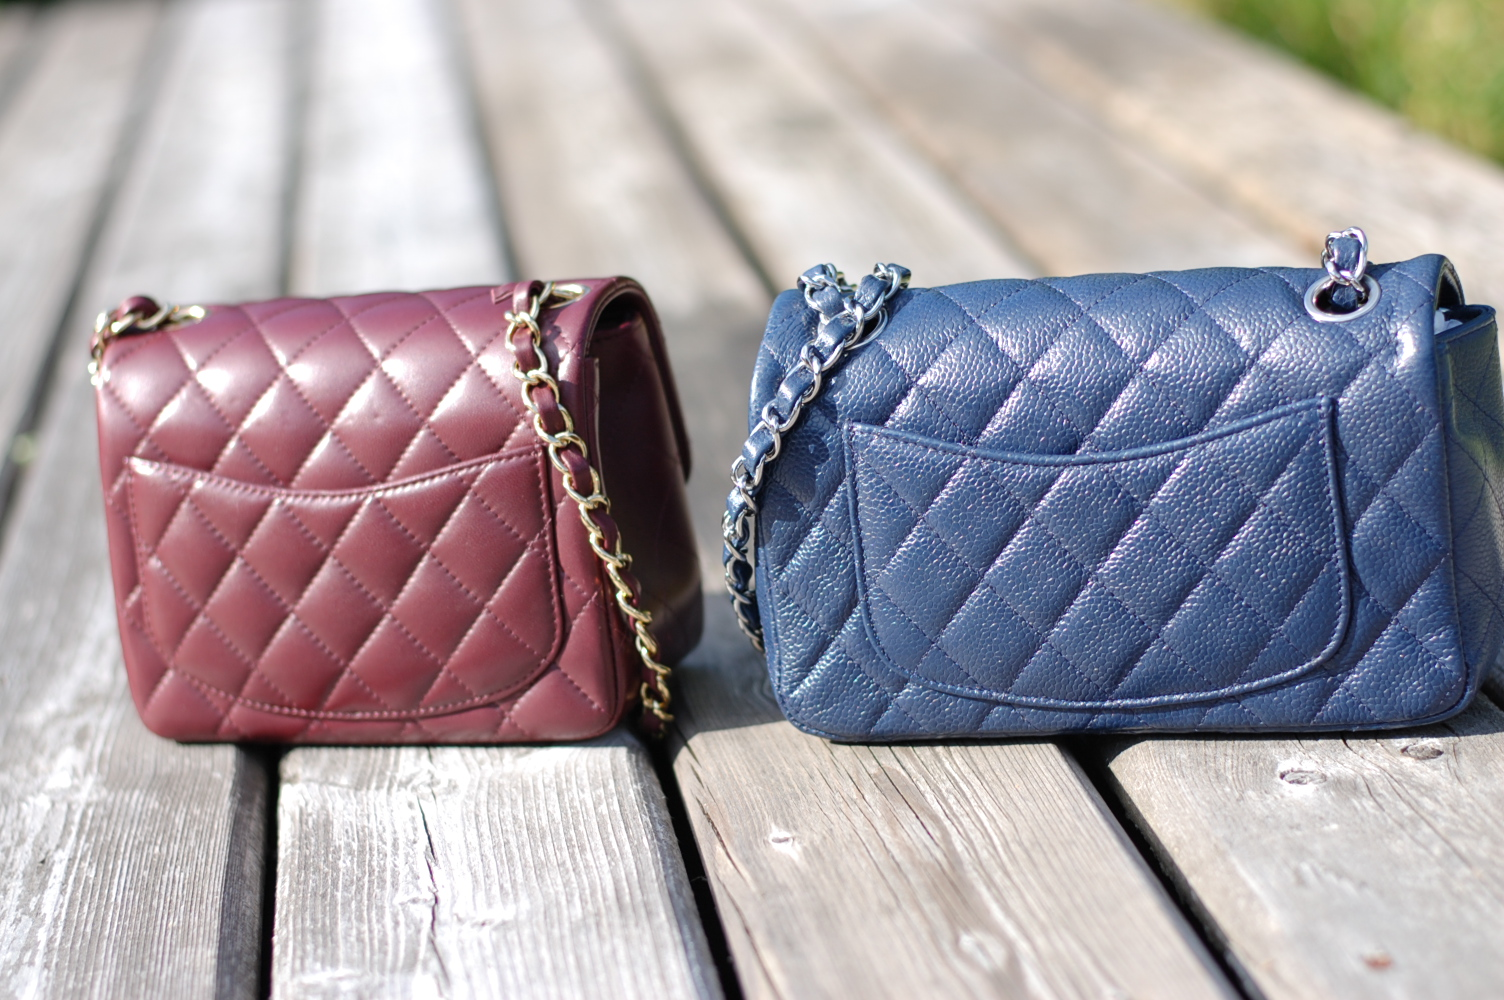 de5c59b6f09 Chanel Timeless Classic Mini Flap handbags  A friendly comparison ...